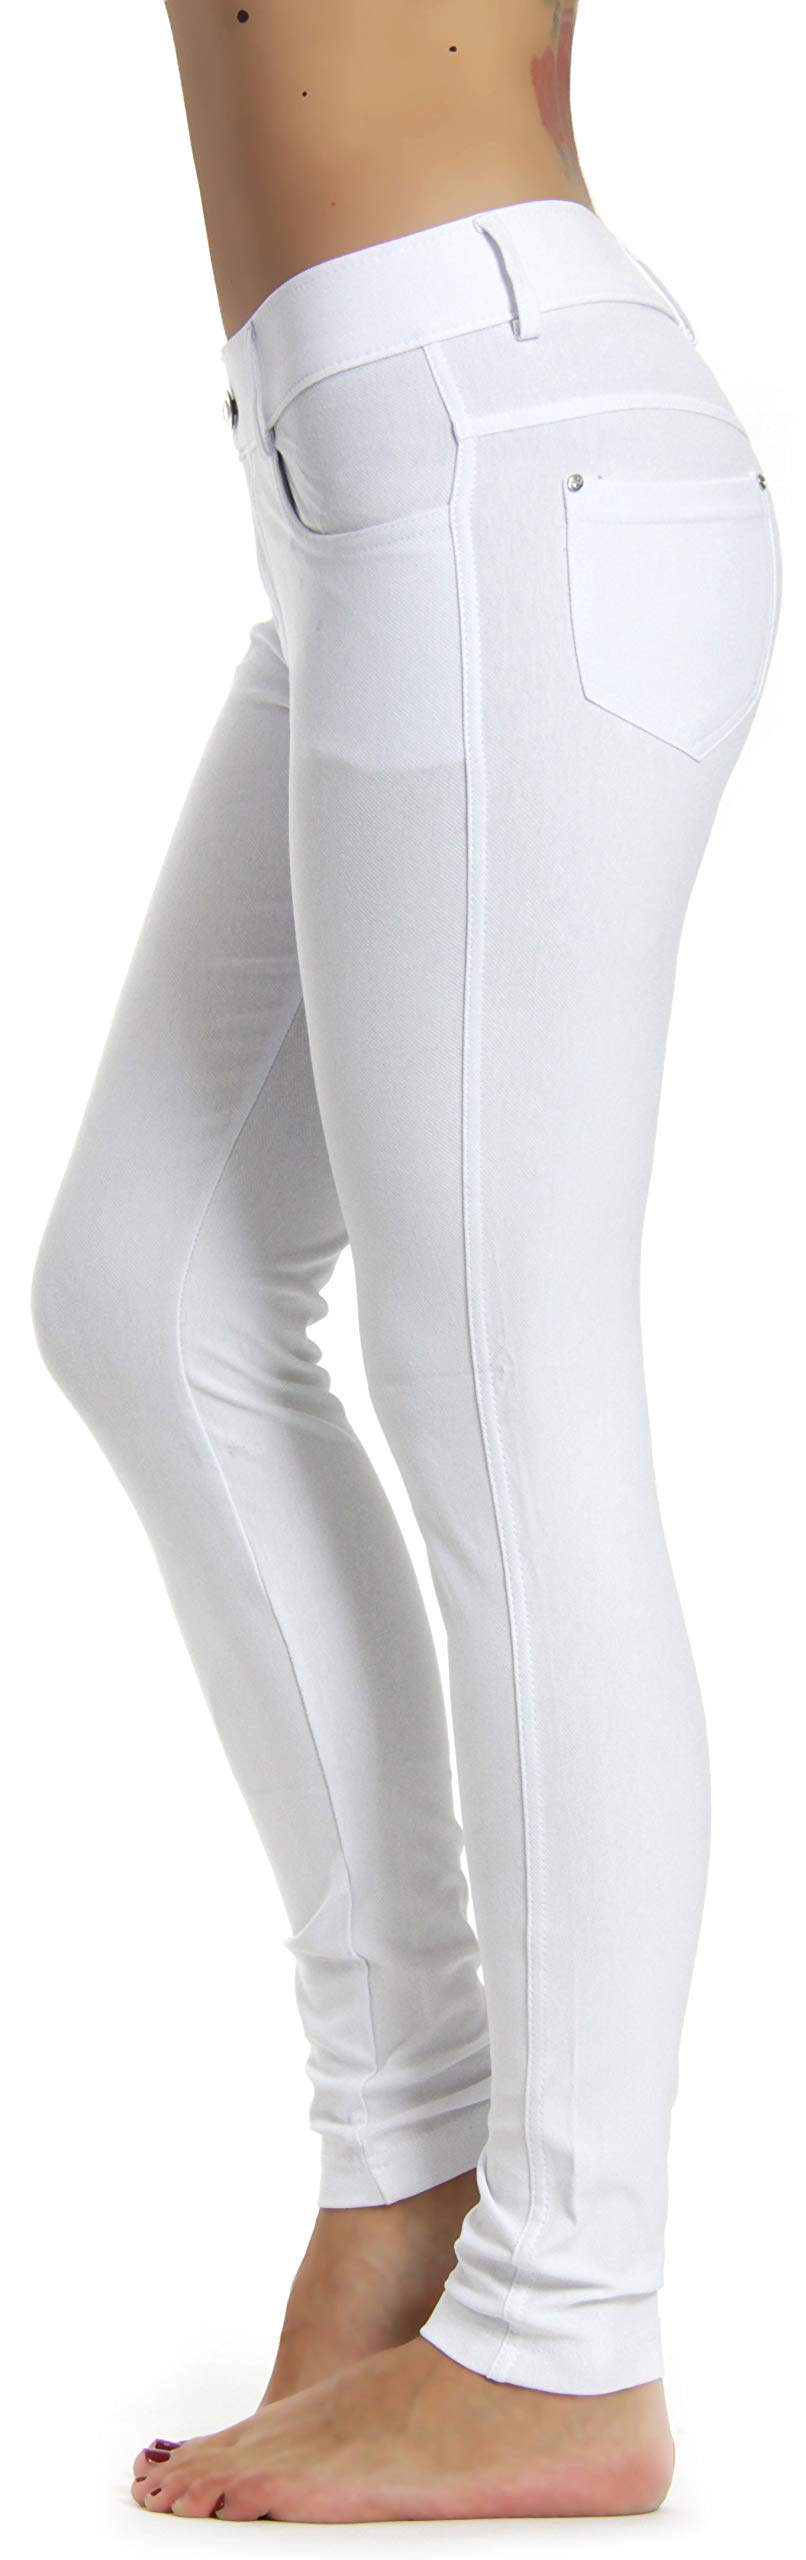 Prolific Health Women's Jean Look Jeggings Tights Slimming Many Colors Spandex Leggings Pants S-XXXL (XX-Large, White)